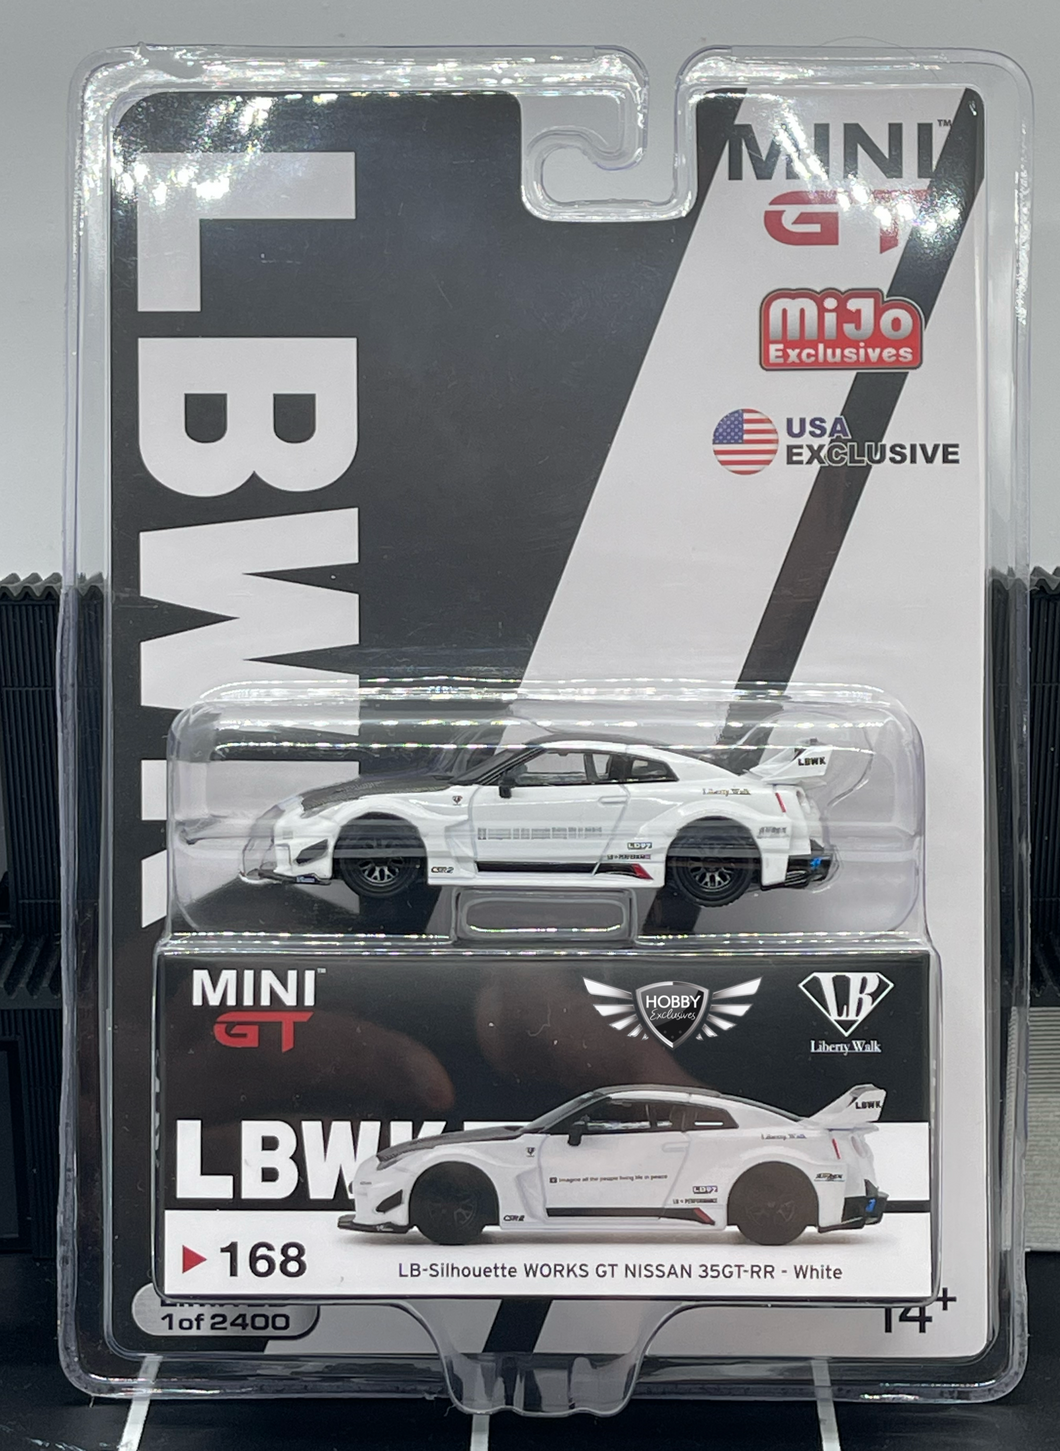 LB Silhouette Works GT Nissan 35GT-RR #168 MiJo Exclusives MINI GT